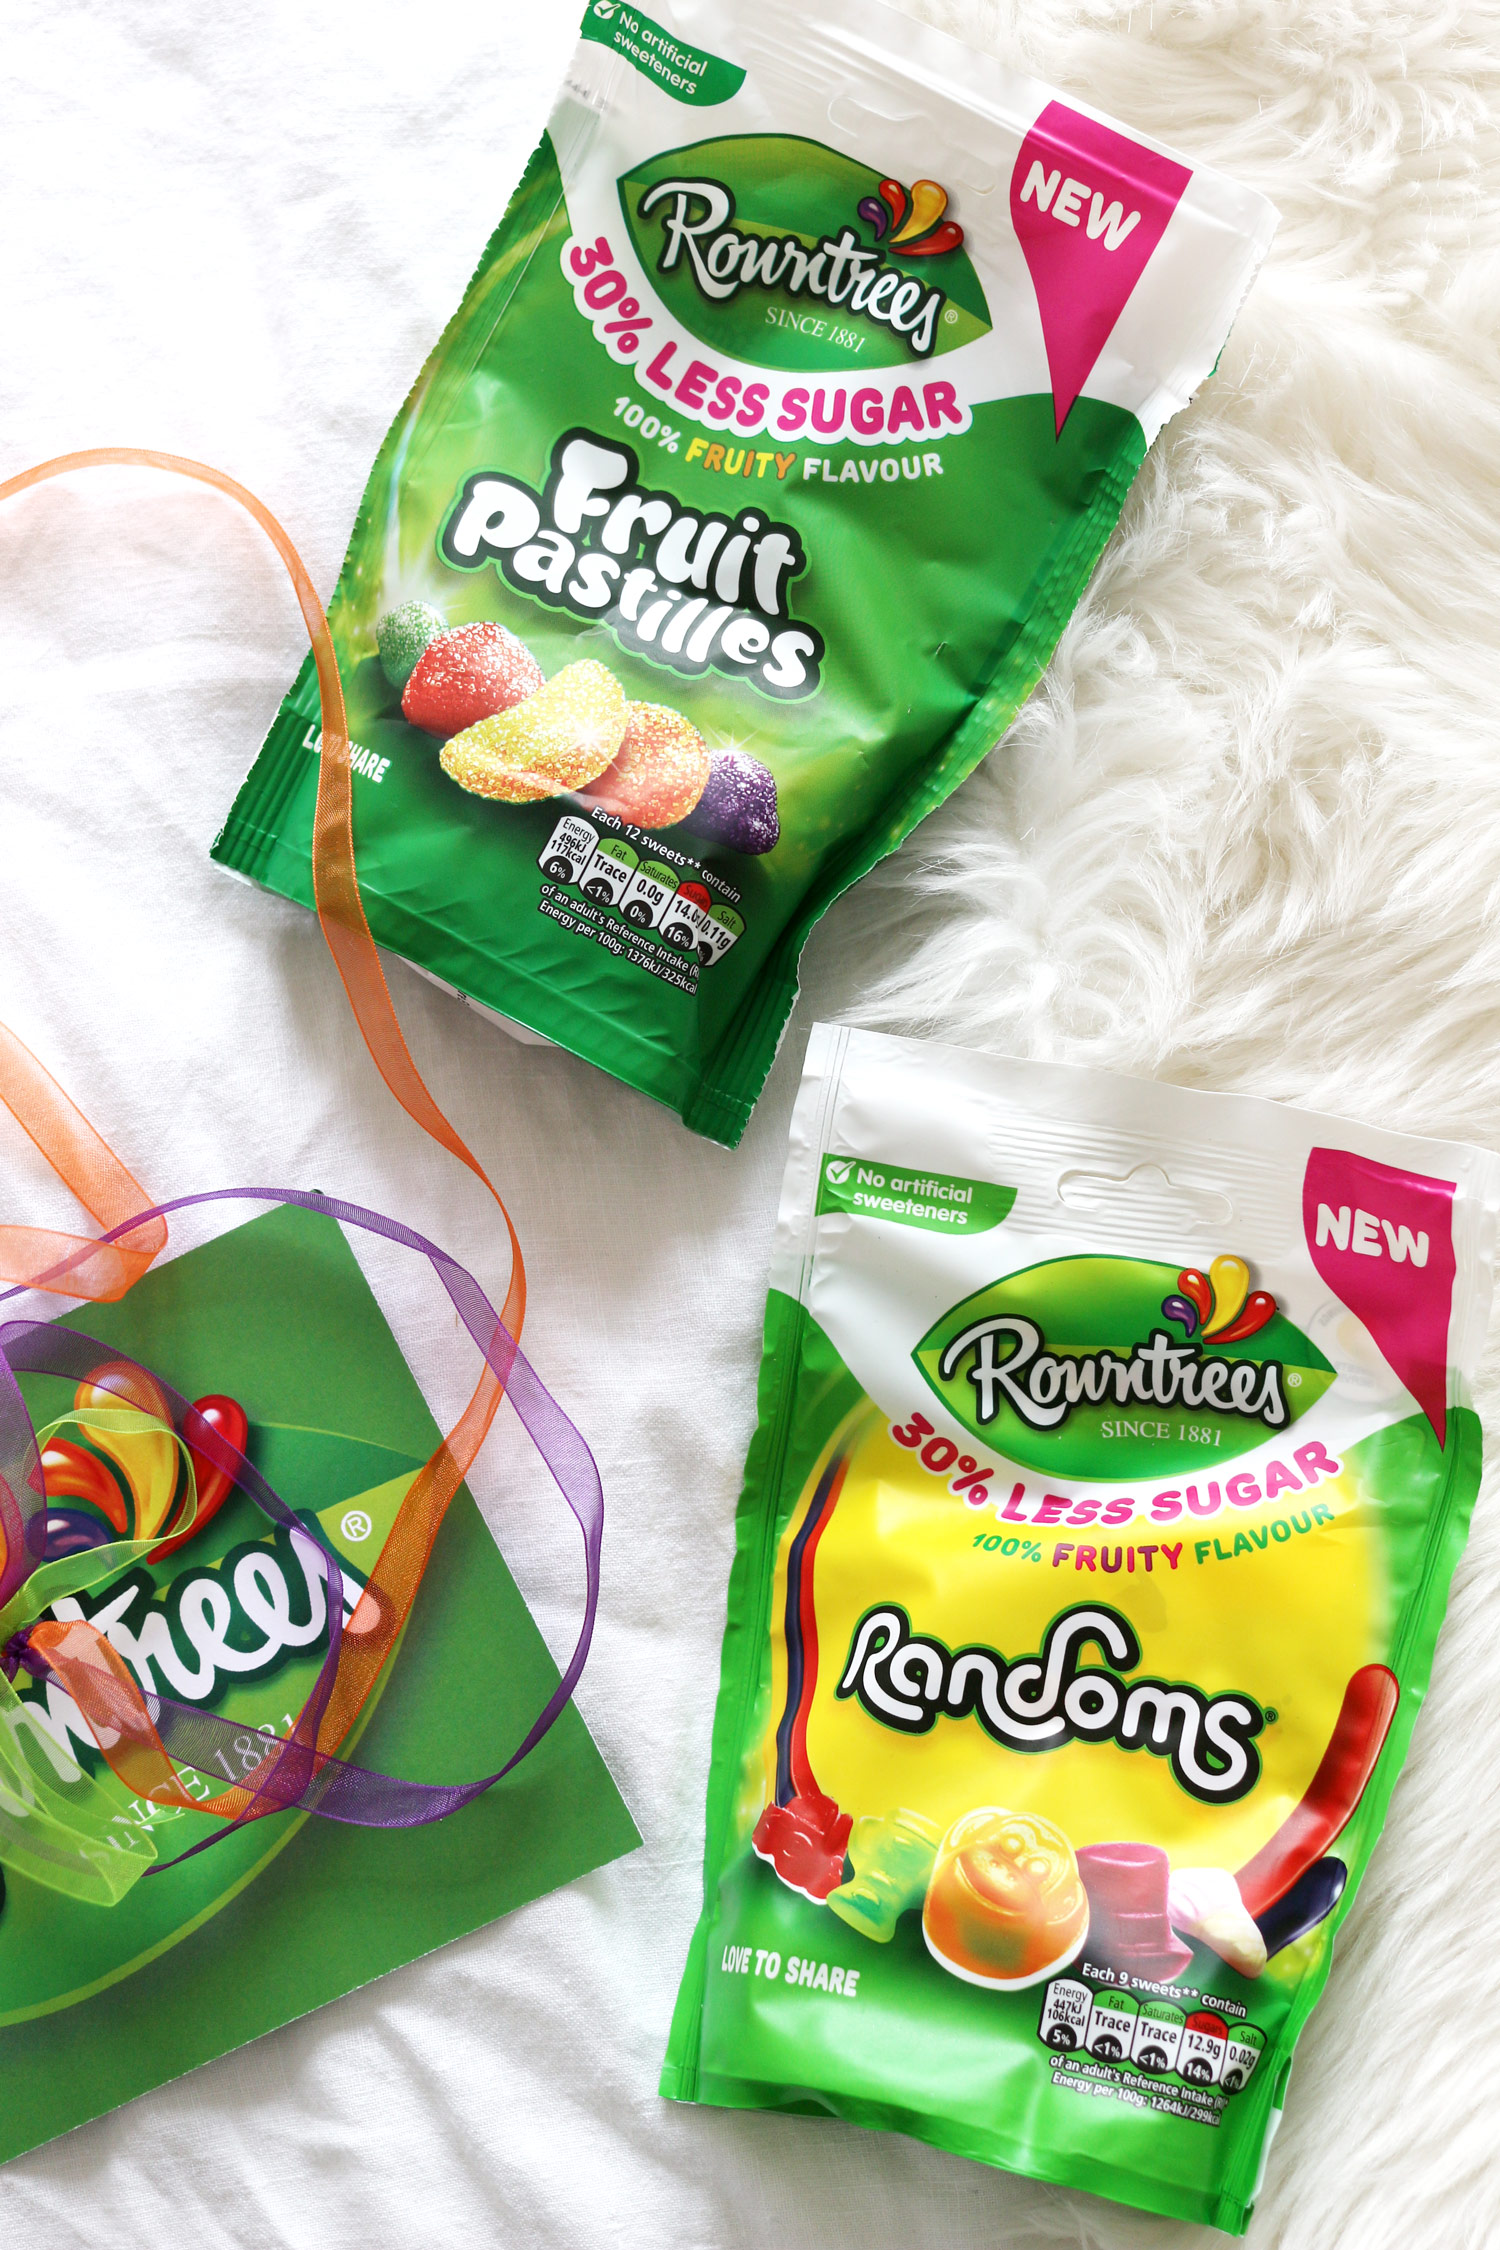 rowntrees-30-less-sugar-fruit-pastilles-randoms-review